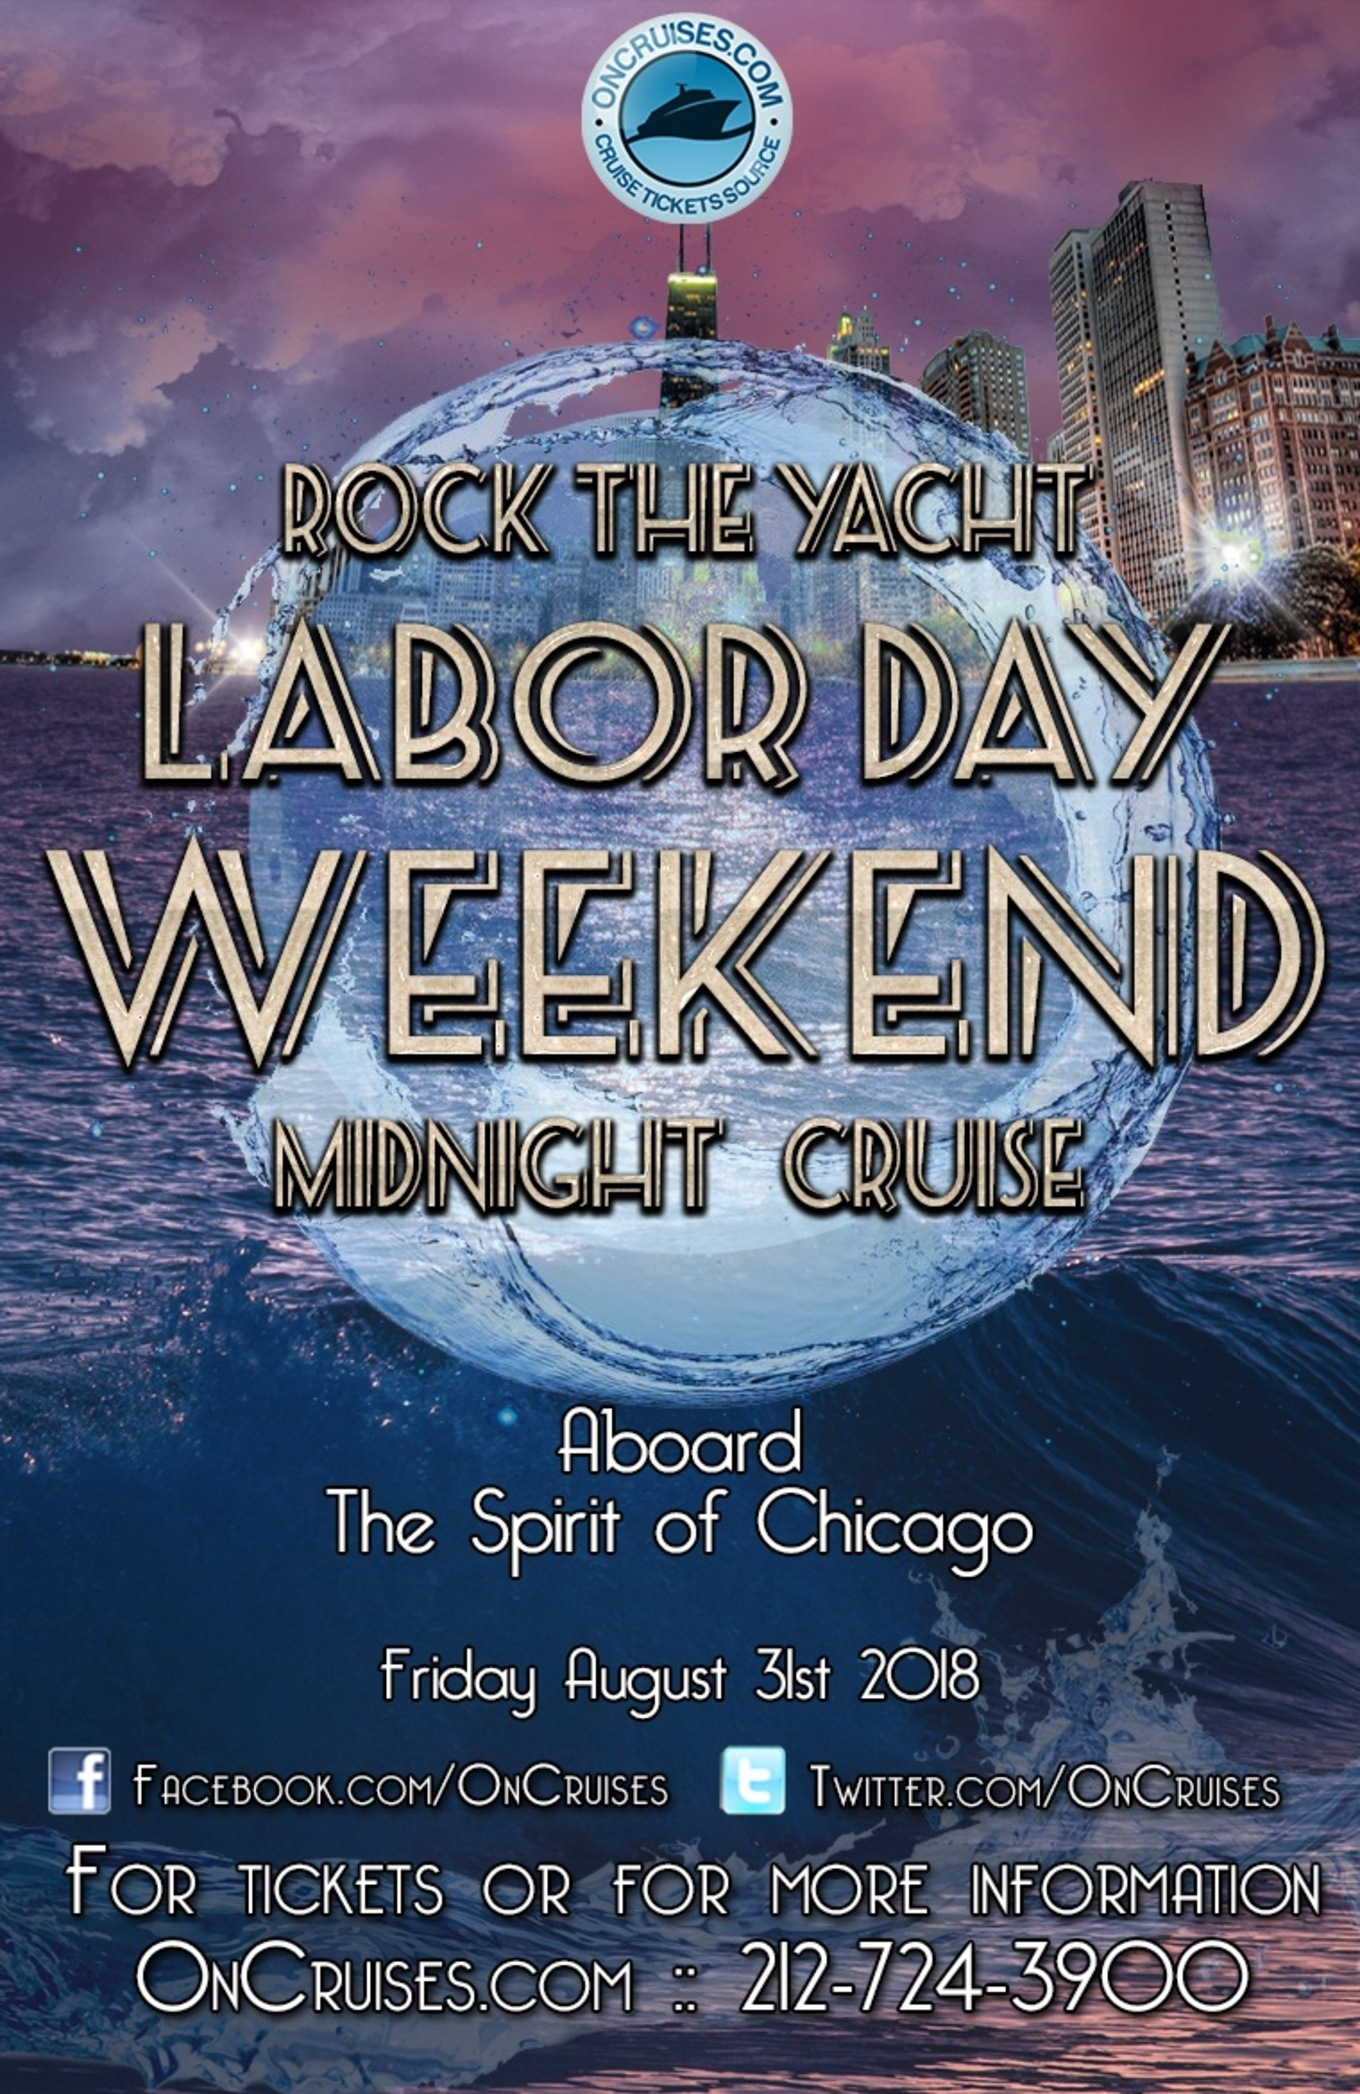 Rock The Yacht Labor Day Weekend All White Midnight Yacht Party